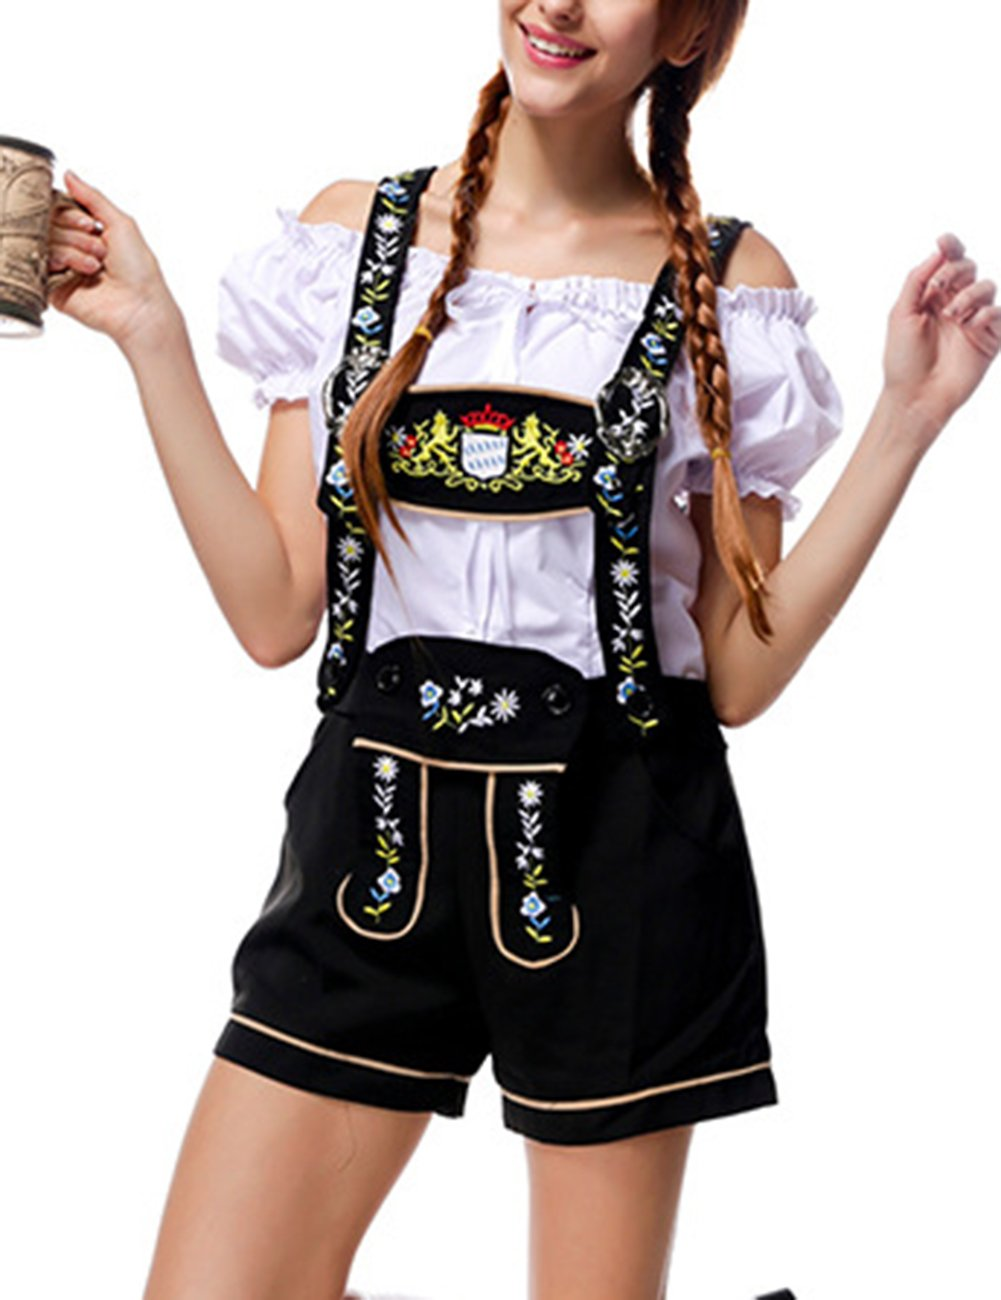 Yiwa Oktoberfest Costumes Women Classic Retro Costumes Sexy Charming Off Shoulder Beer Festival Tops + Suspenders Pants by Yiwa (Image #2)